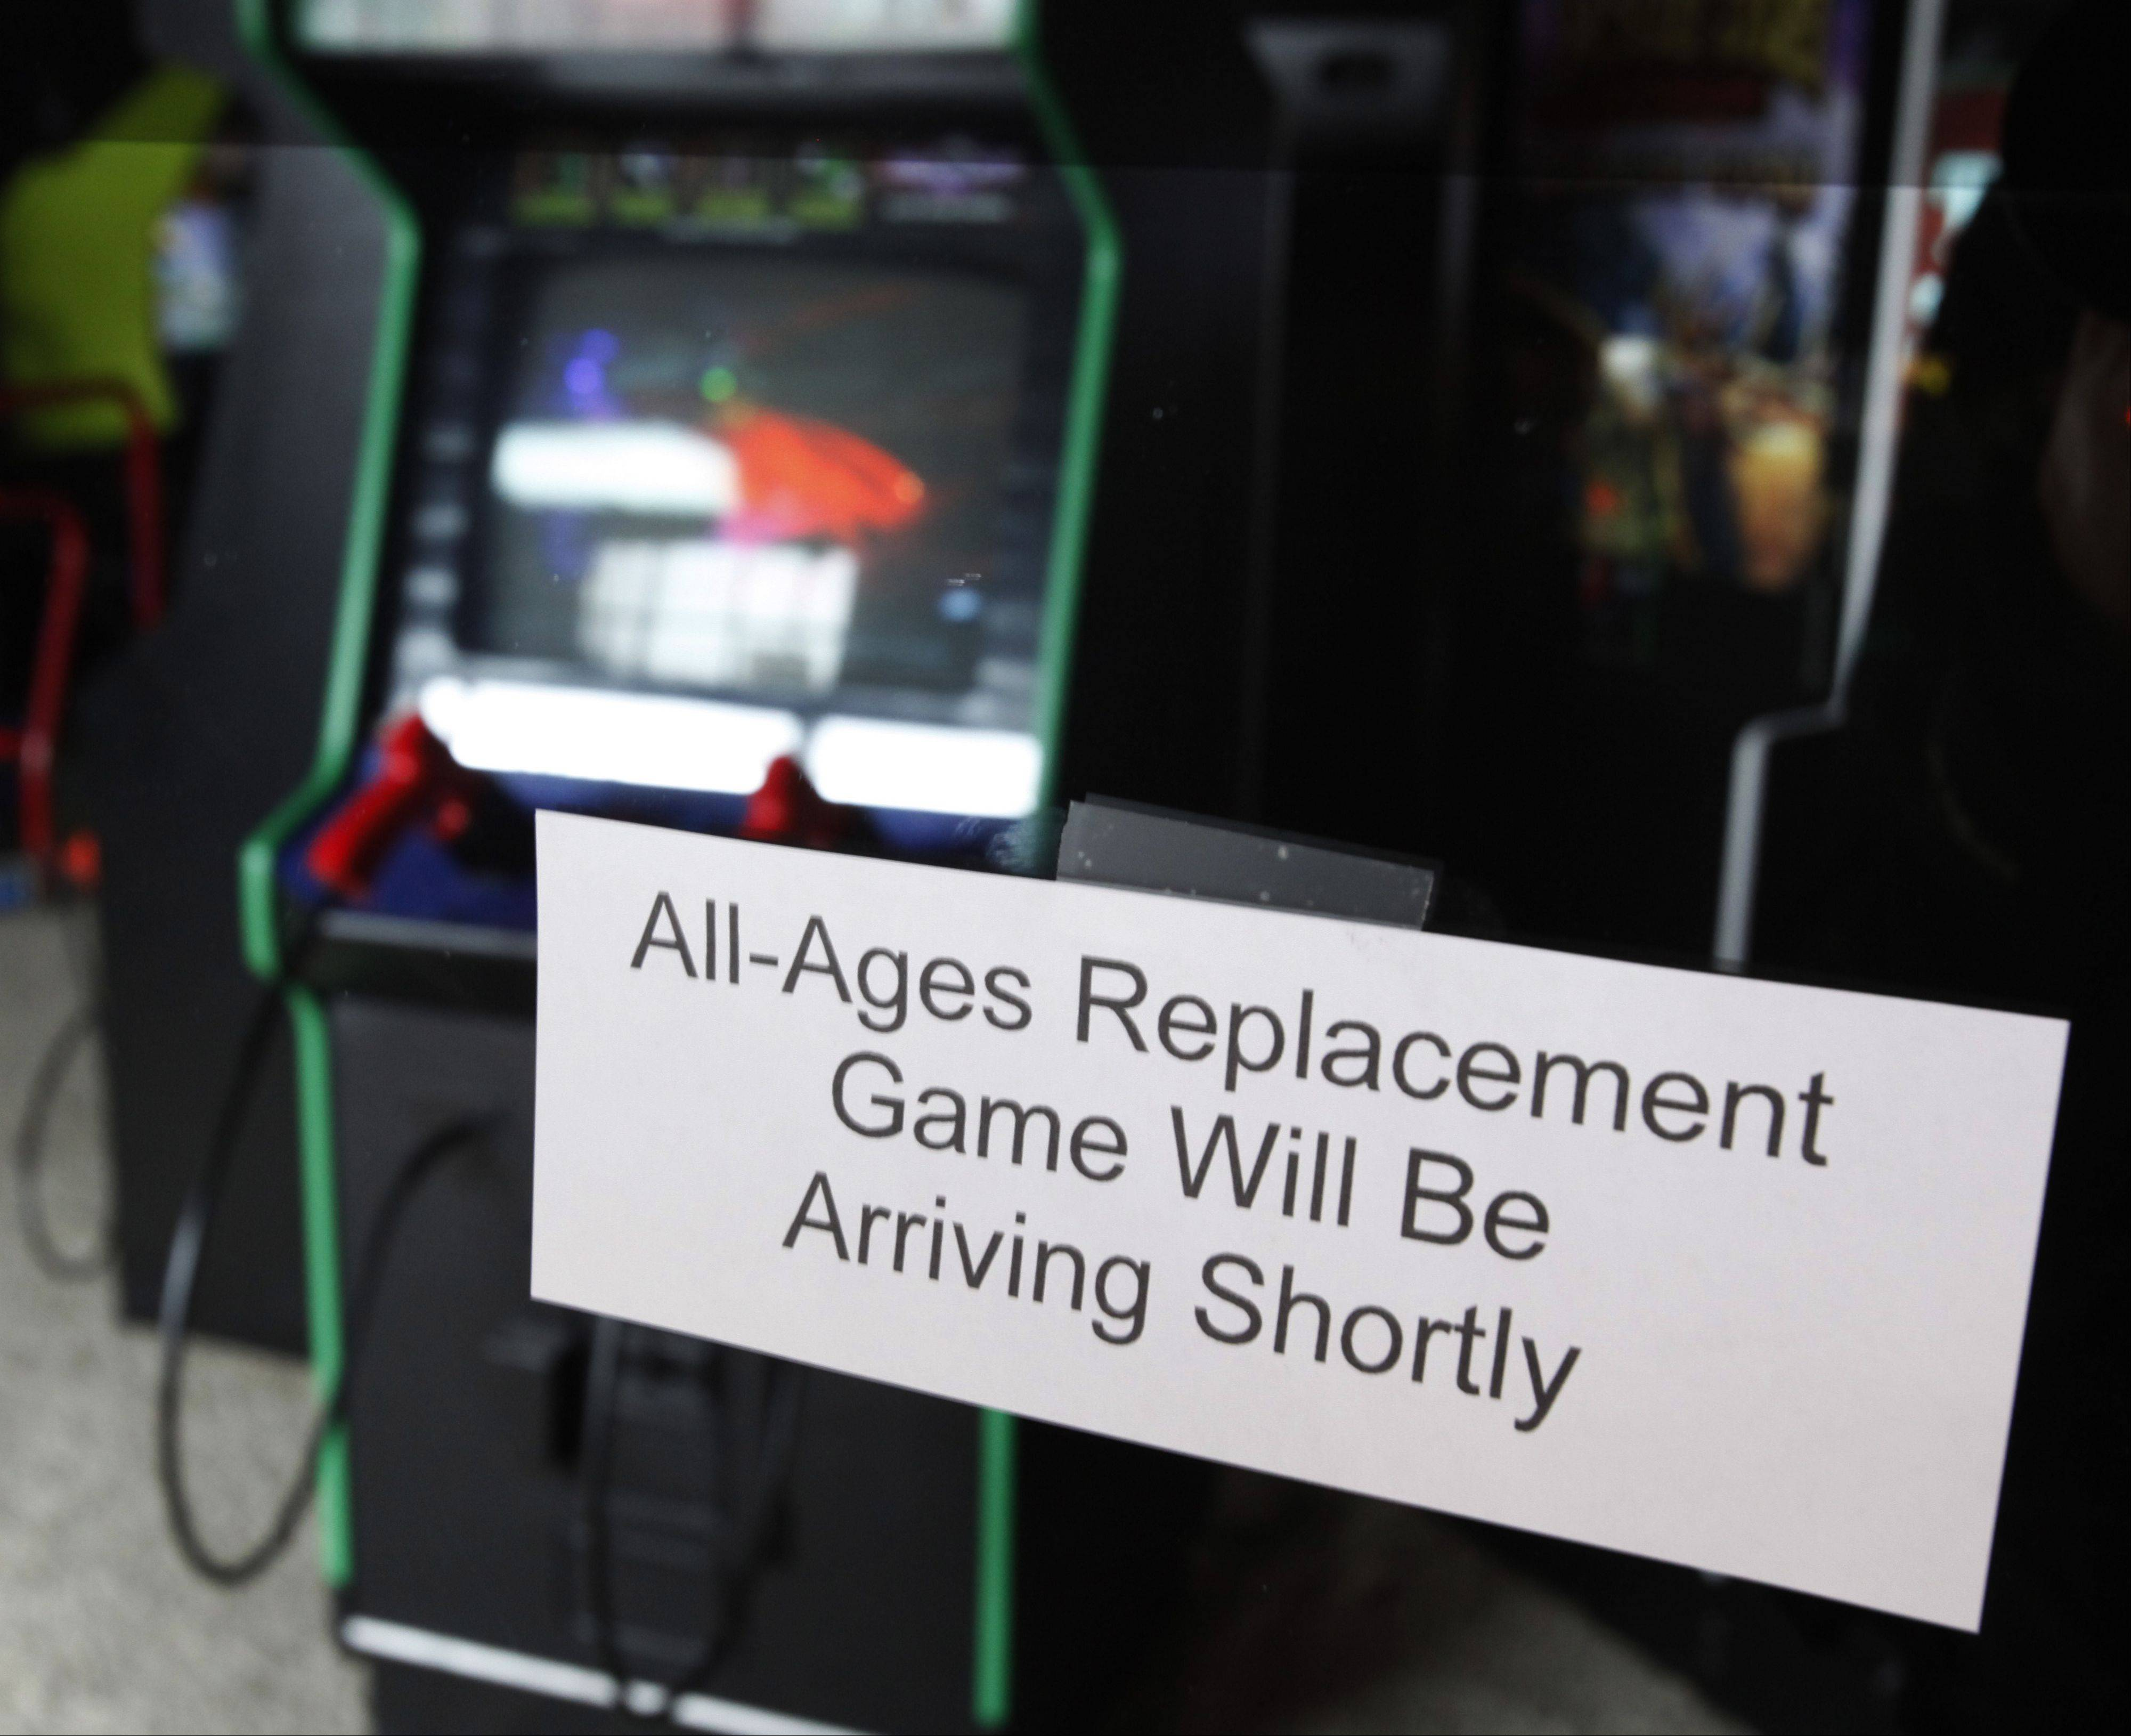 No Limit Arcade co-owner Kevin Slota says he doesn't see how taking the violent games out of the arcade will hurt his business, especially given that he's replacing them with other games.